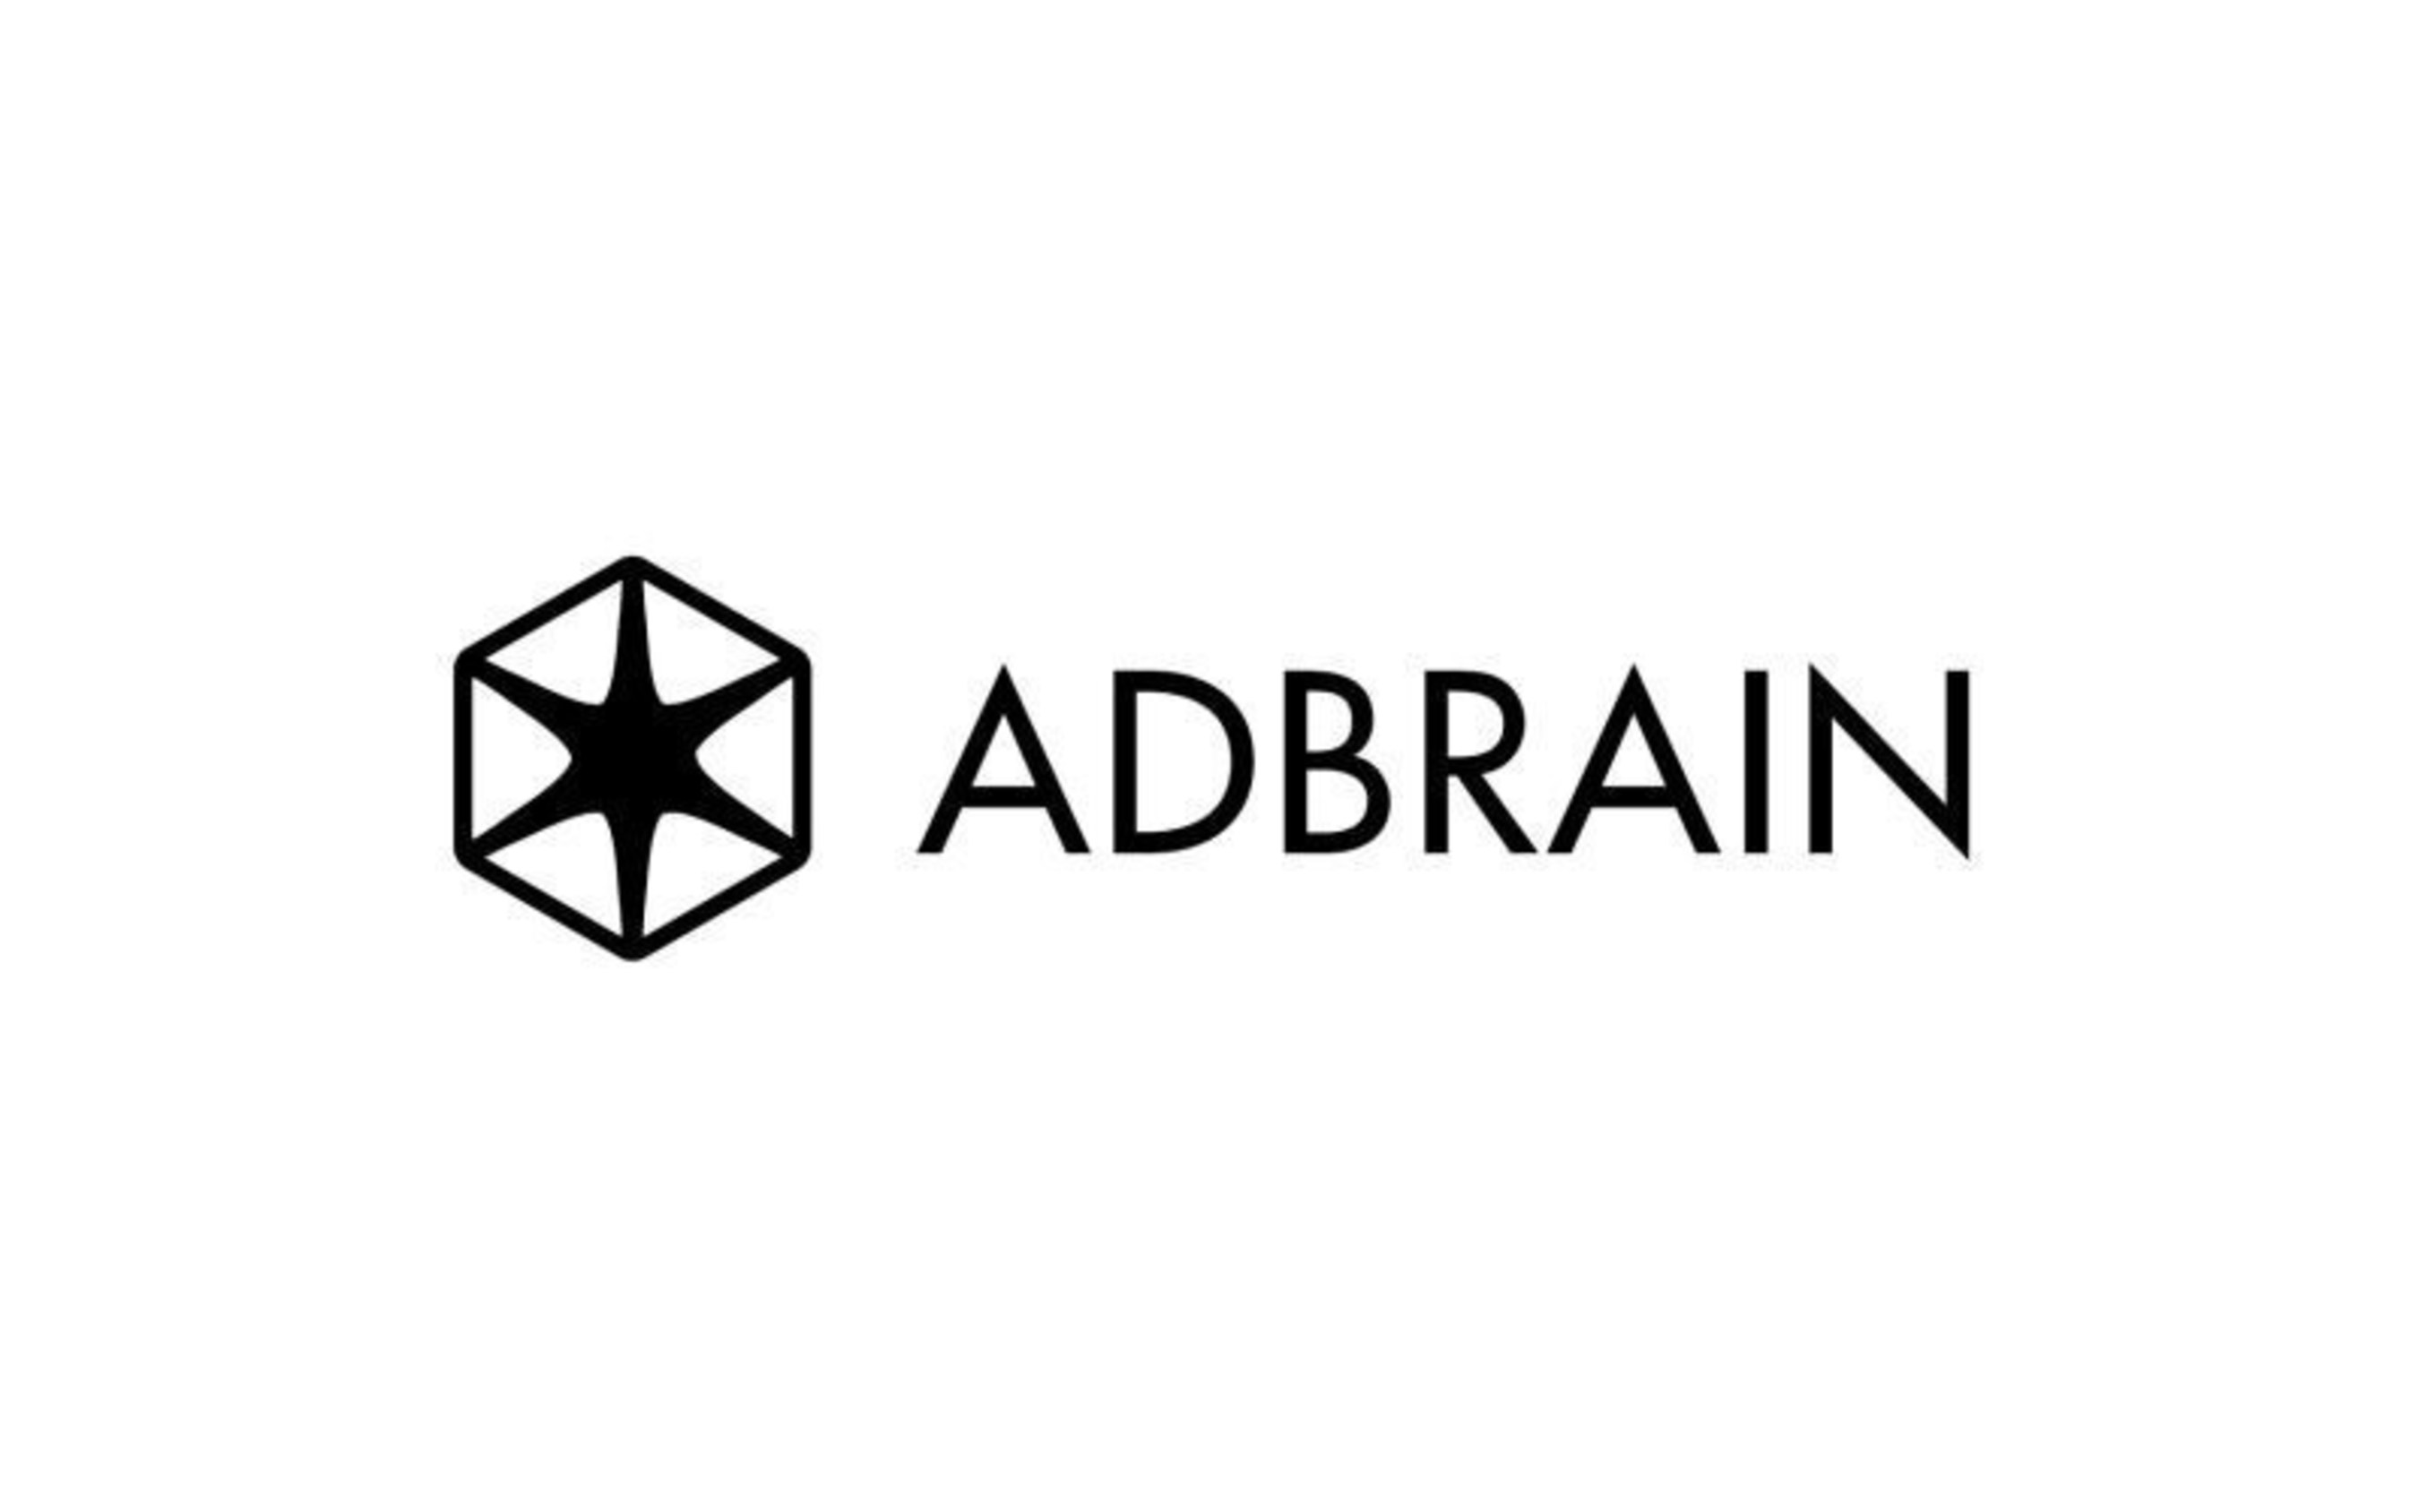 Adbrain Announces Integration to Distribute Cross-Device Graph Through LiveRamp